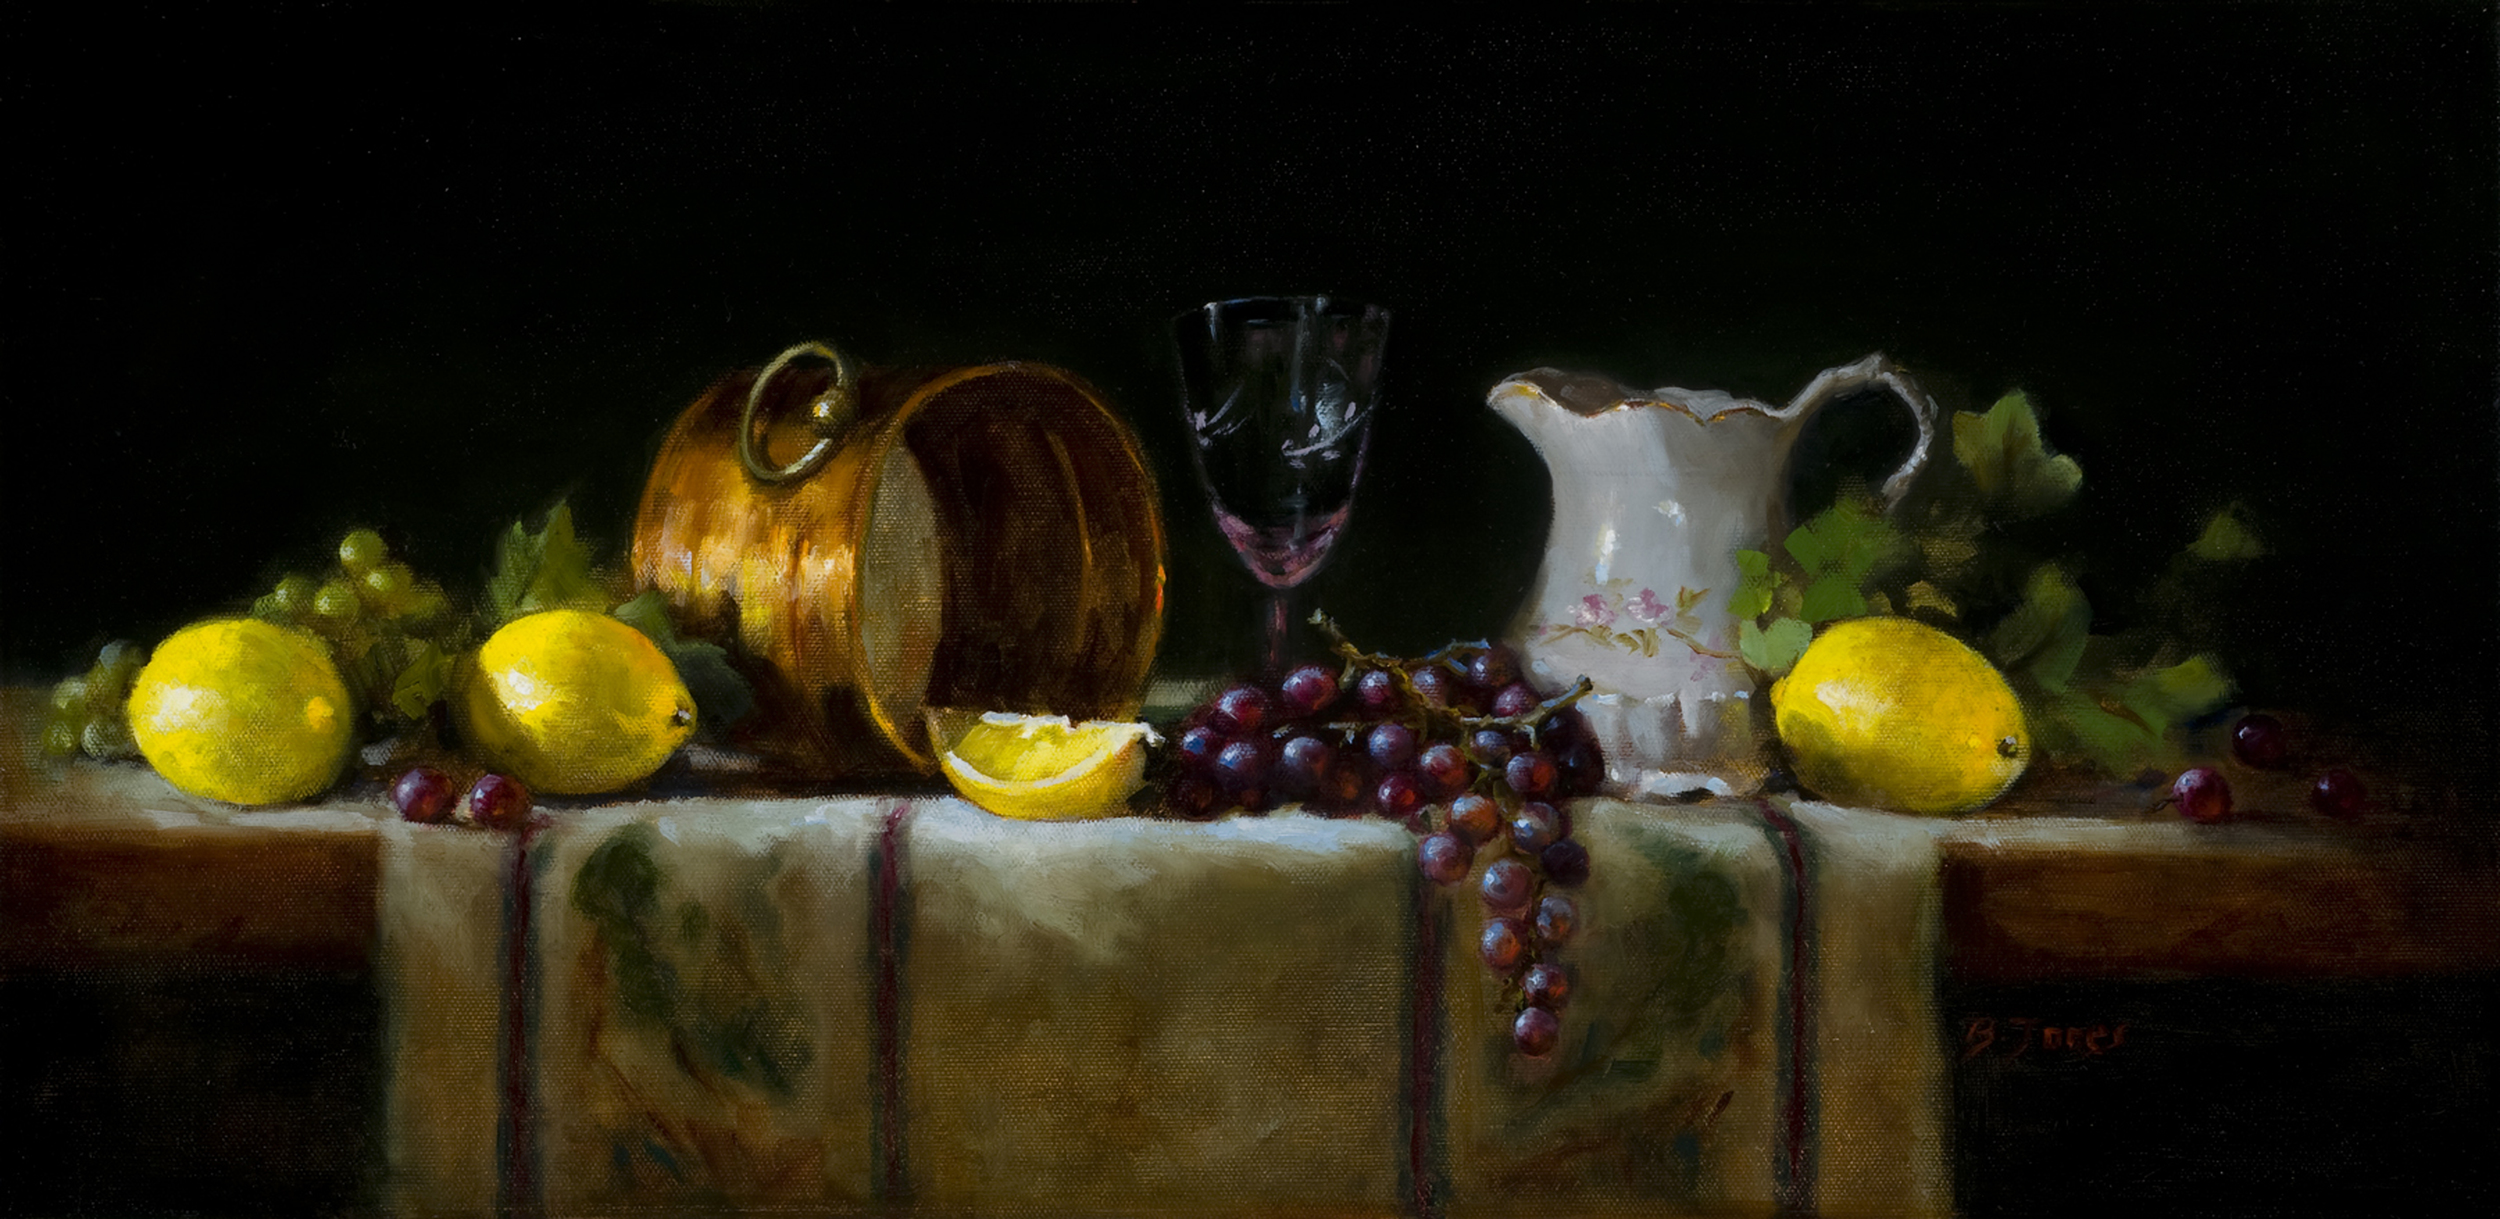 Still Life with Copper and Lemons-12x24-oil on linen-Barbara A Jones.jpg